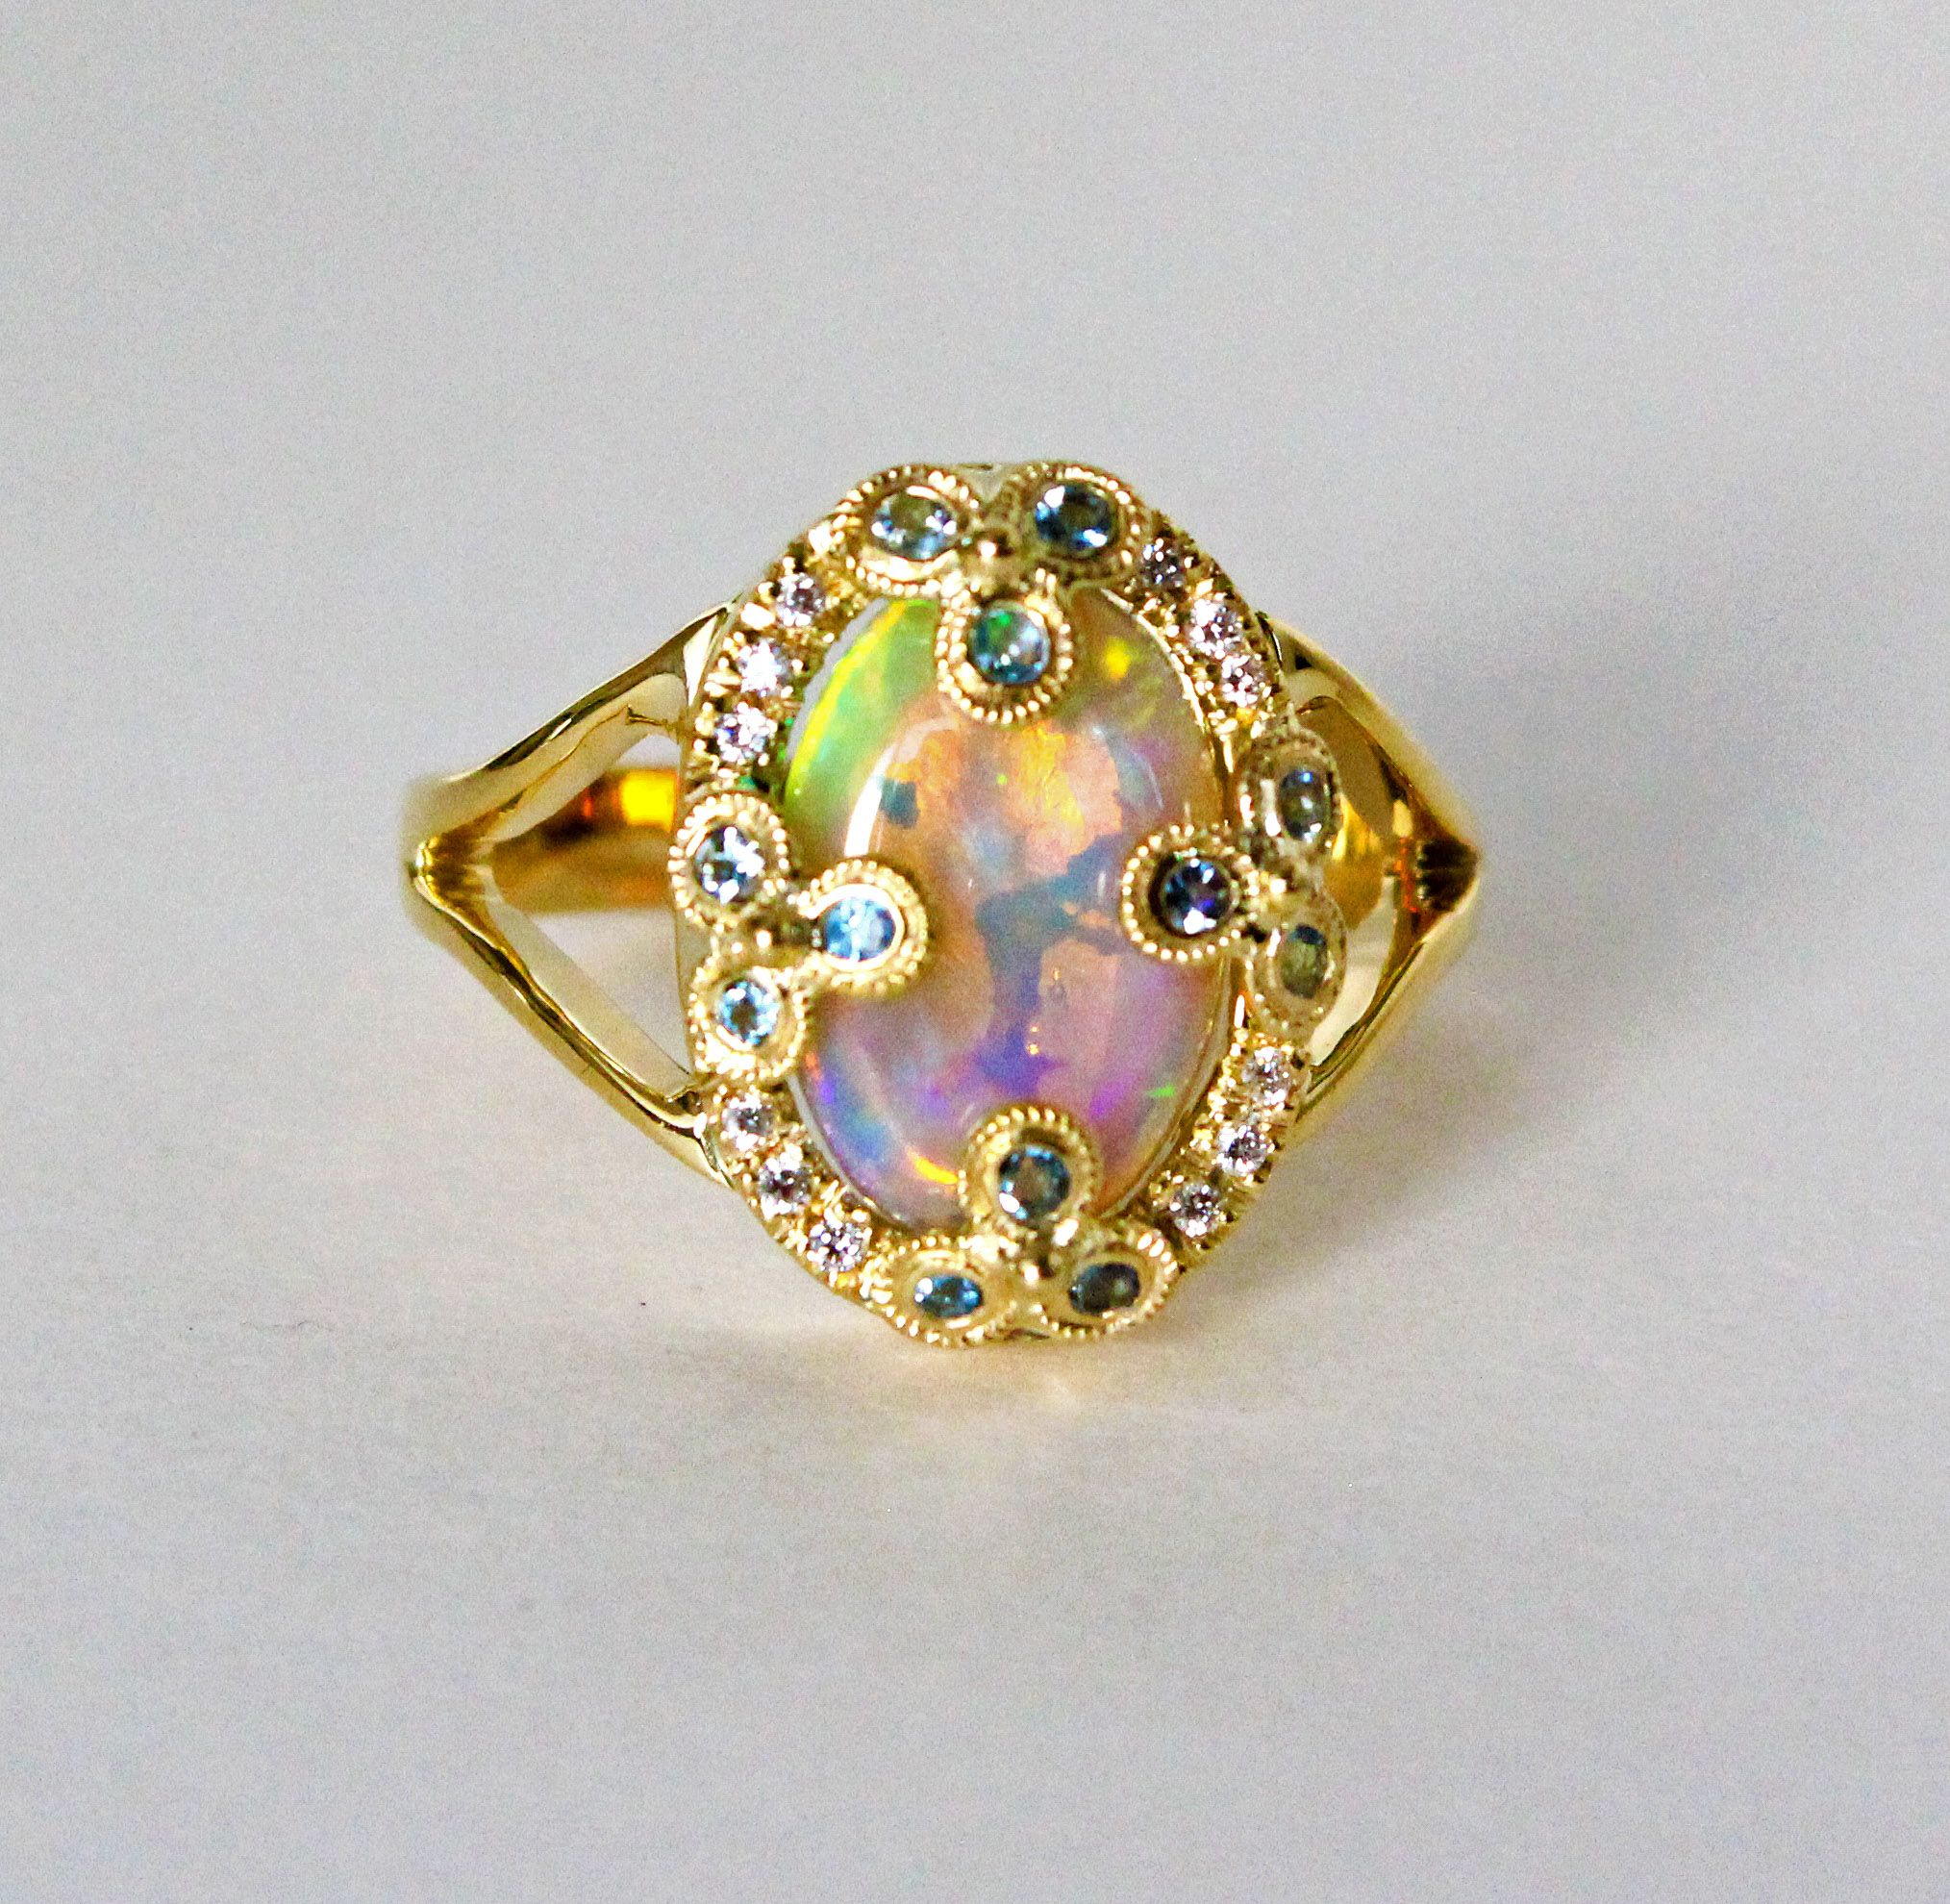 A customer's finished custom order of large opal, aquamarine, white diamond and 14k yellow gold ring. www.sarahhughes.net